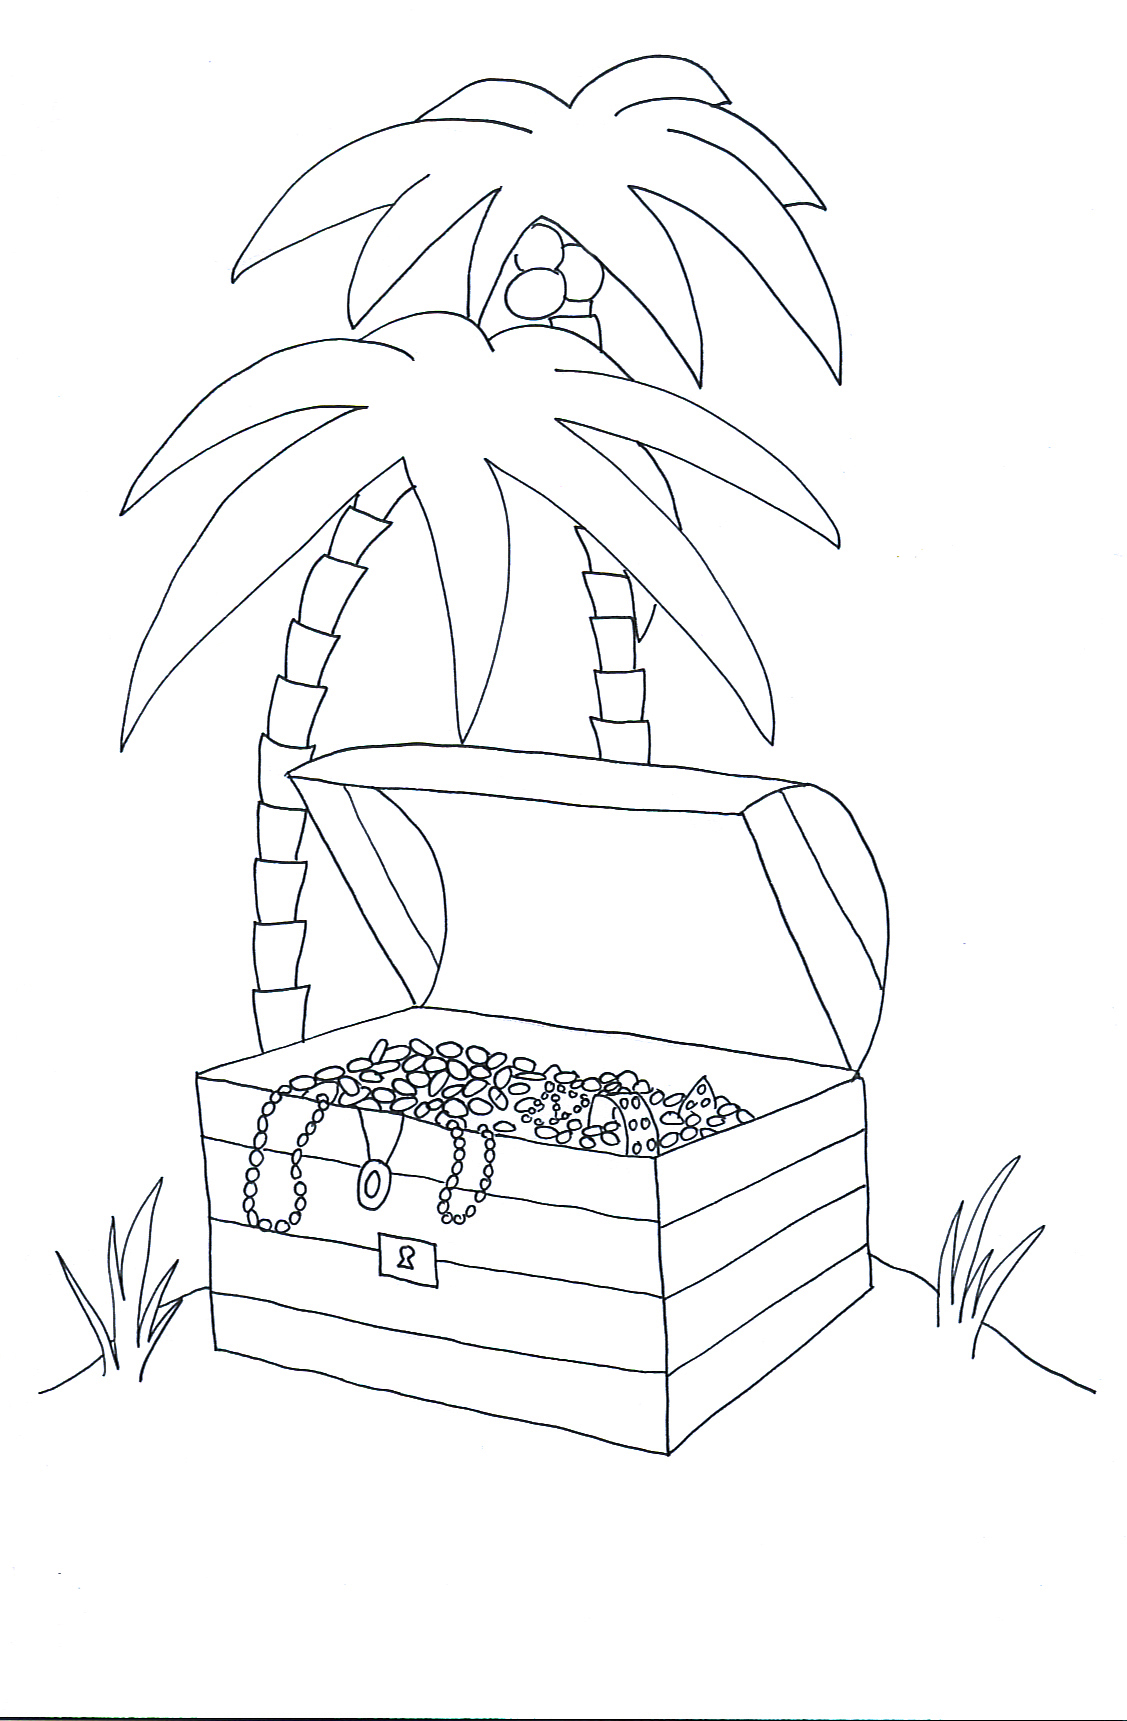 pirate treasure chest on island with palm trees